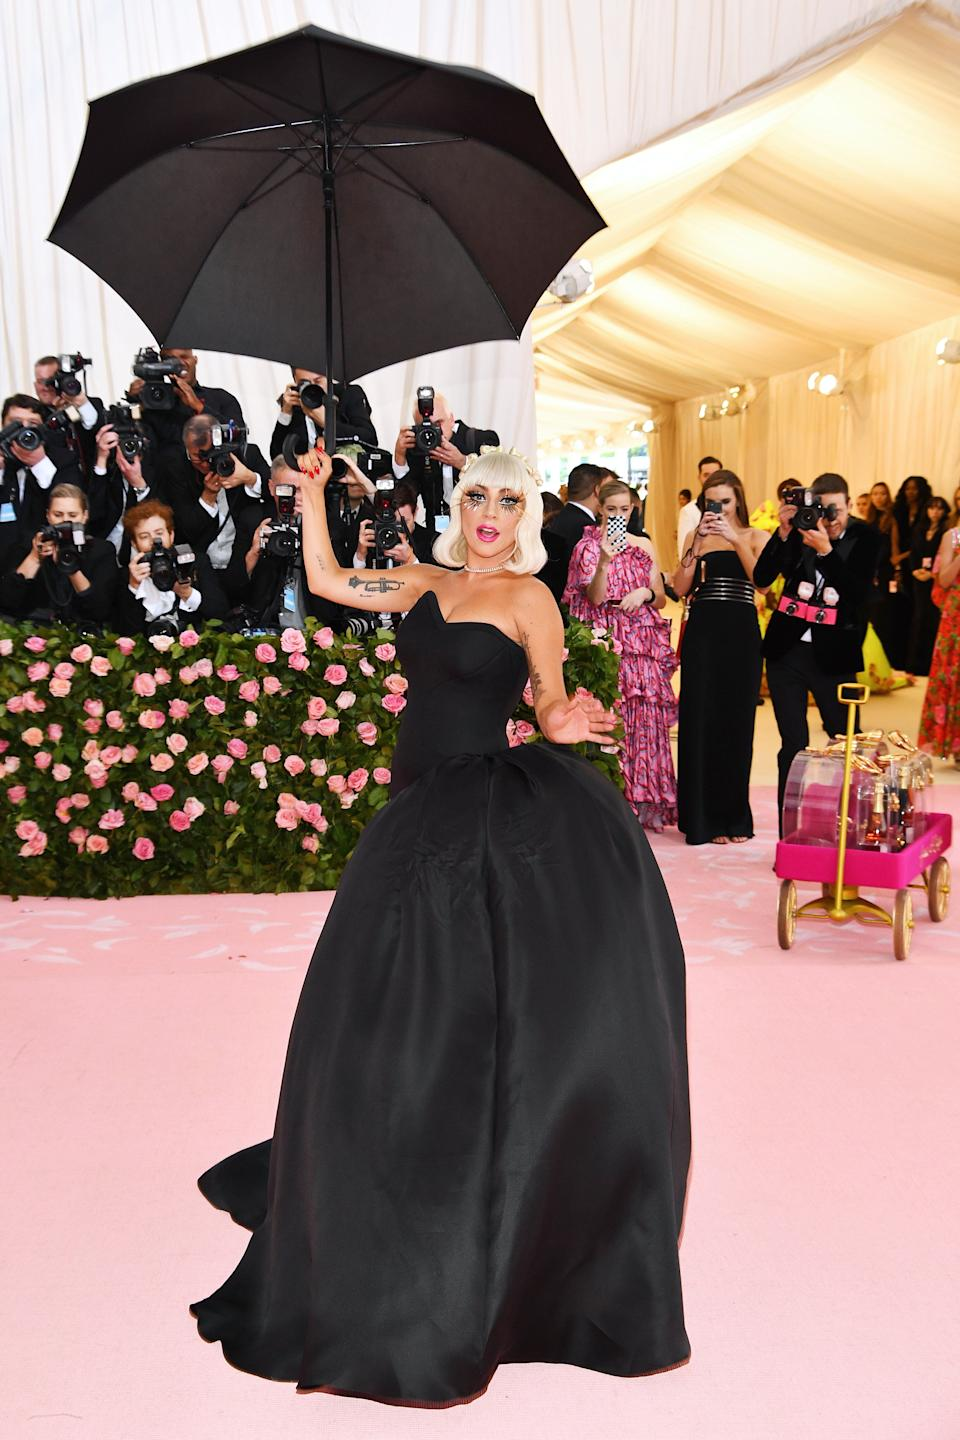 NEW YORK, NEW YORK - MAY 06: Lady Gaga attends The 2019 Met Gala Celebrating Camp: Notes on Fashion at Metropolitan Museum of Art on May 06, 2019 in New York City. (Photo by Dimitrios Kambouris/Getty Images for The Met Museum/Vogue)